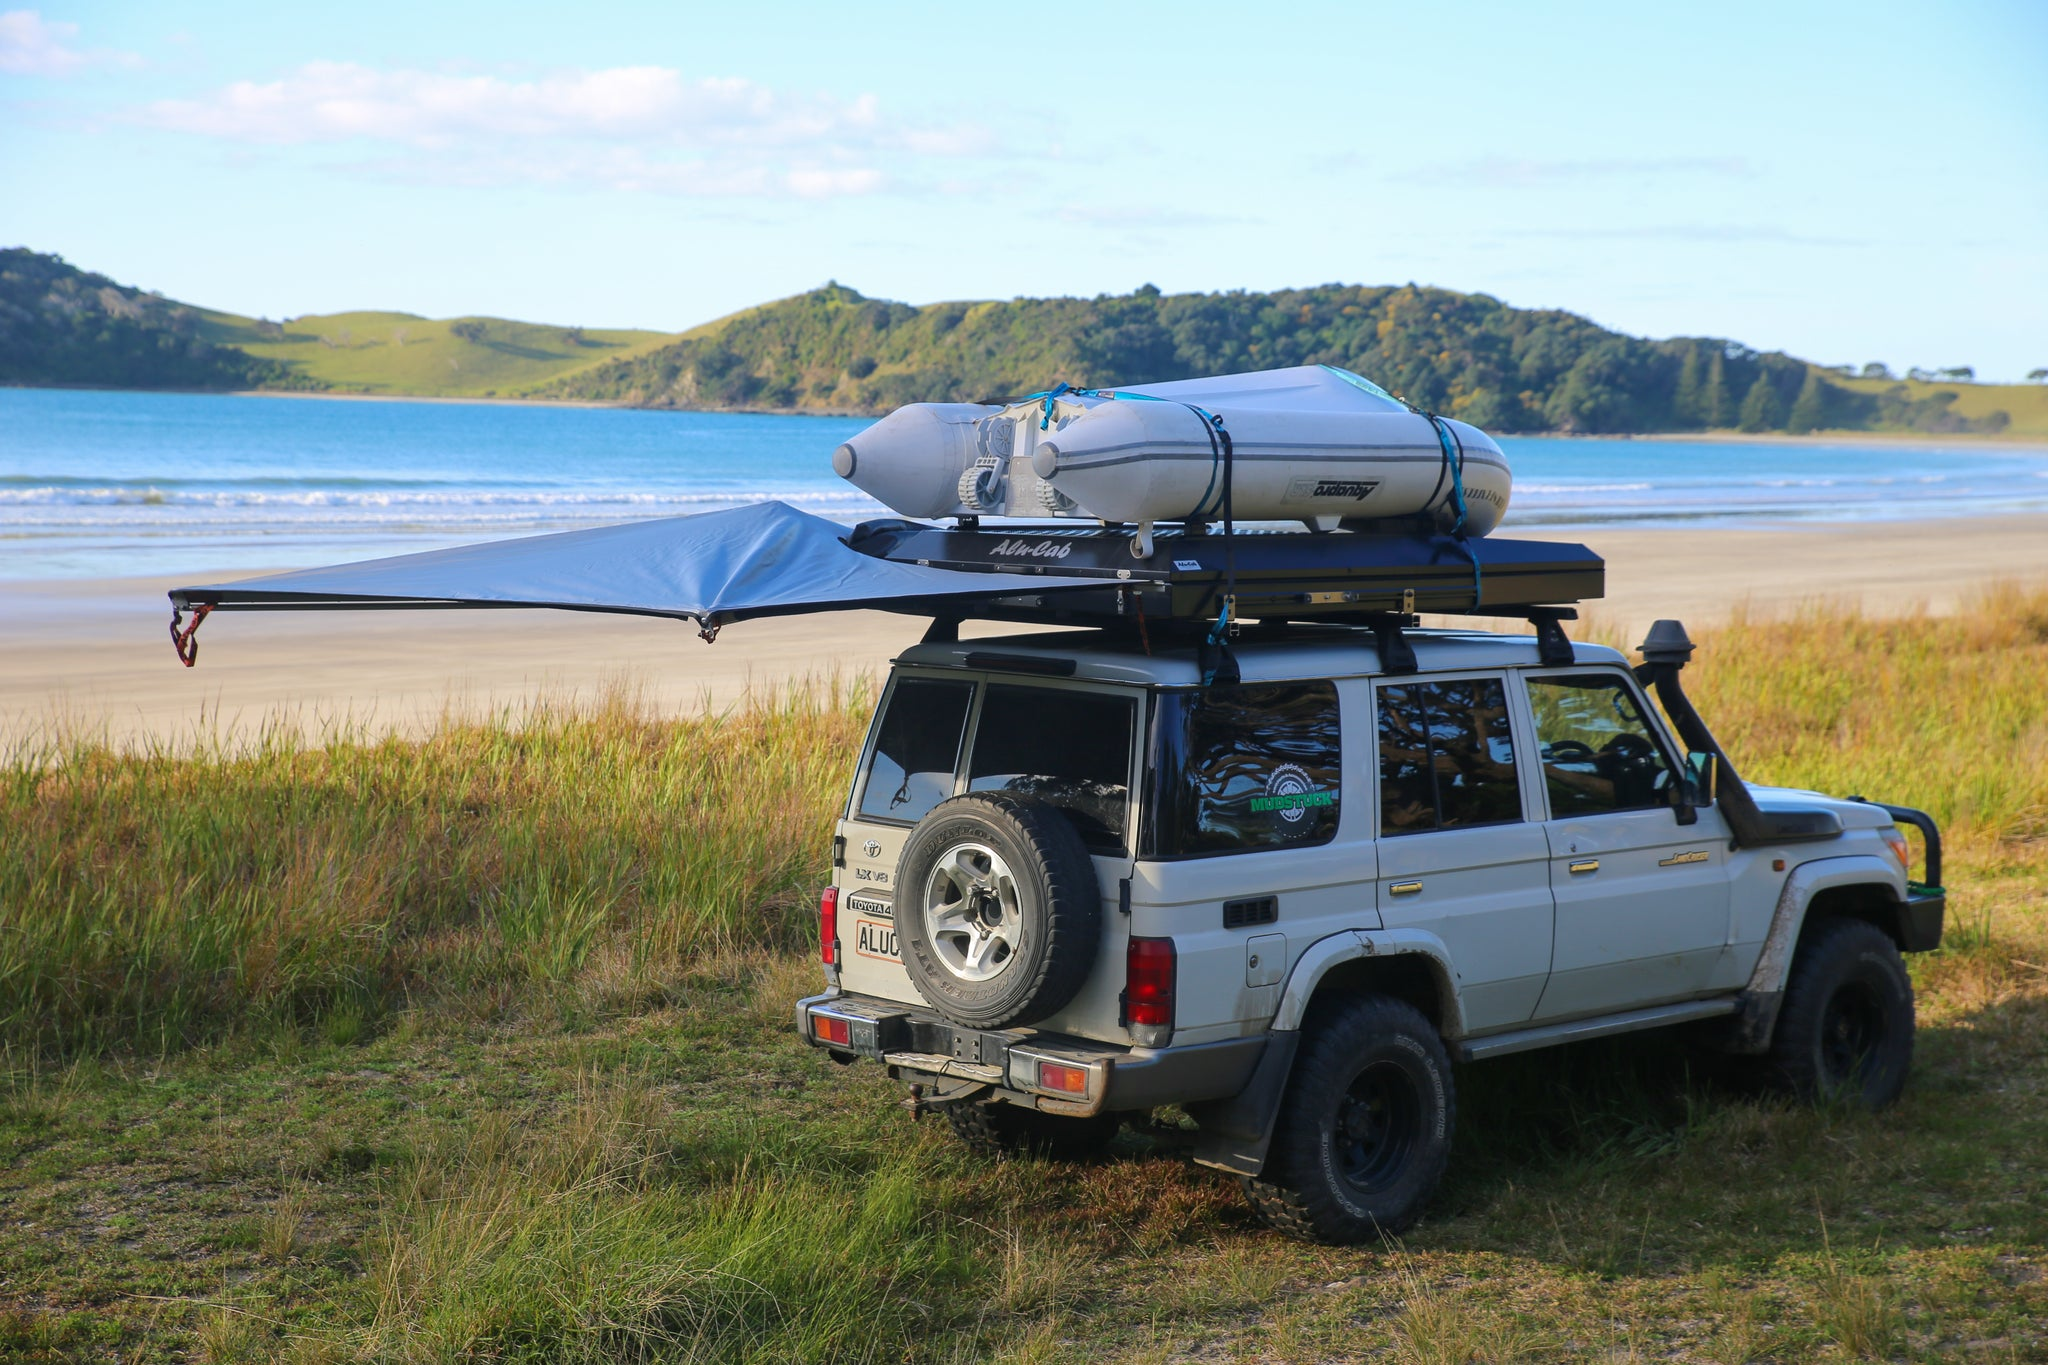 Mudstuck Alu-Cab Gen3 roof top tent and Shawdow Awning with a Landcruiser 76